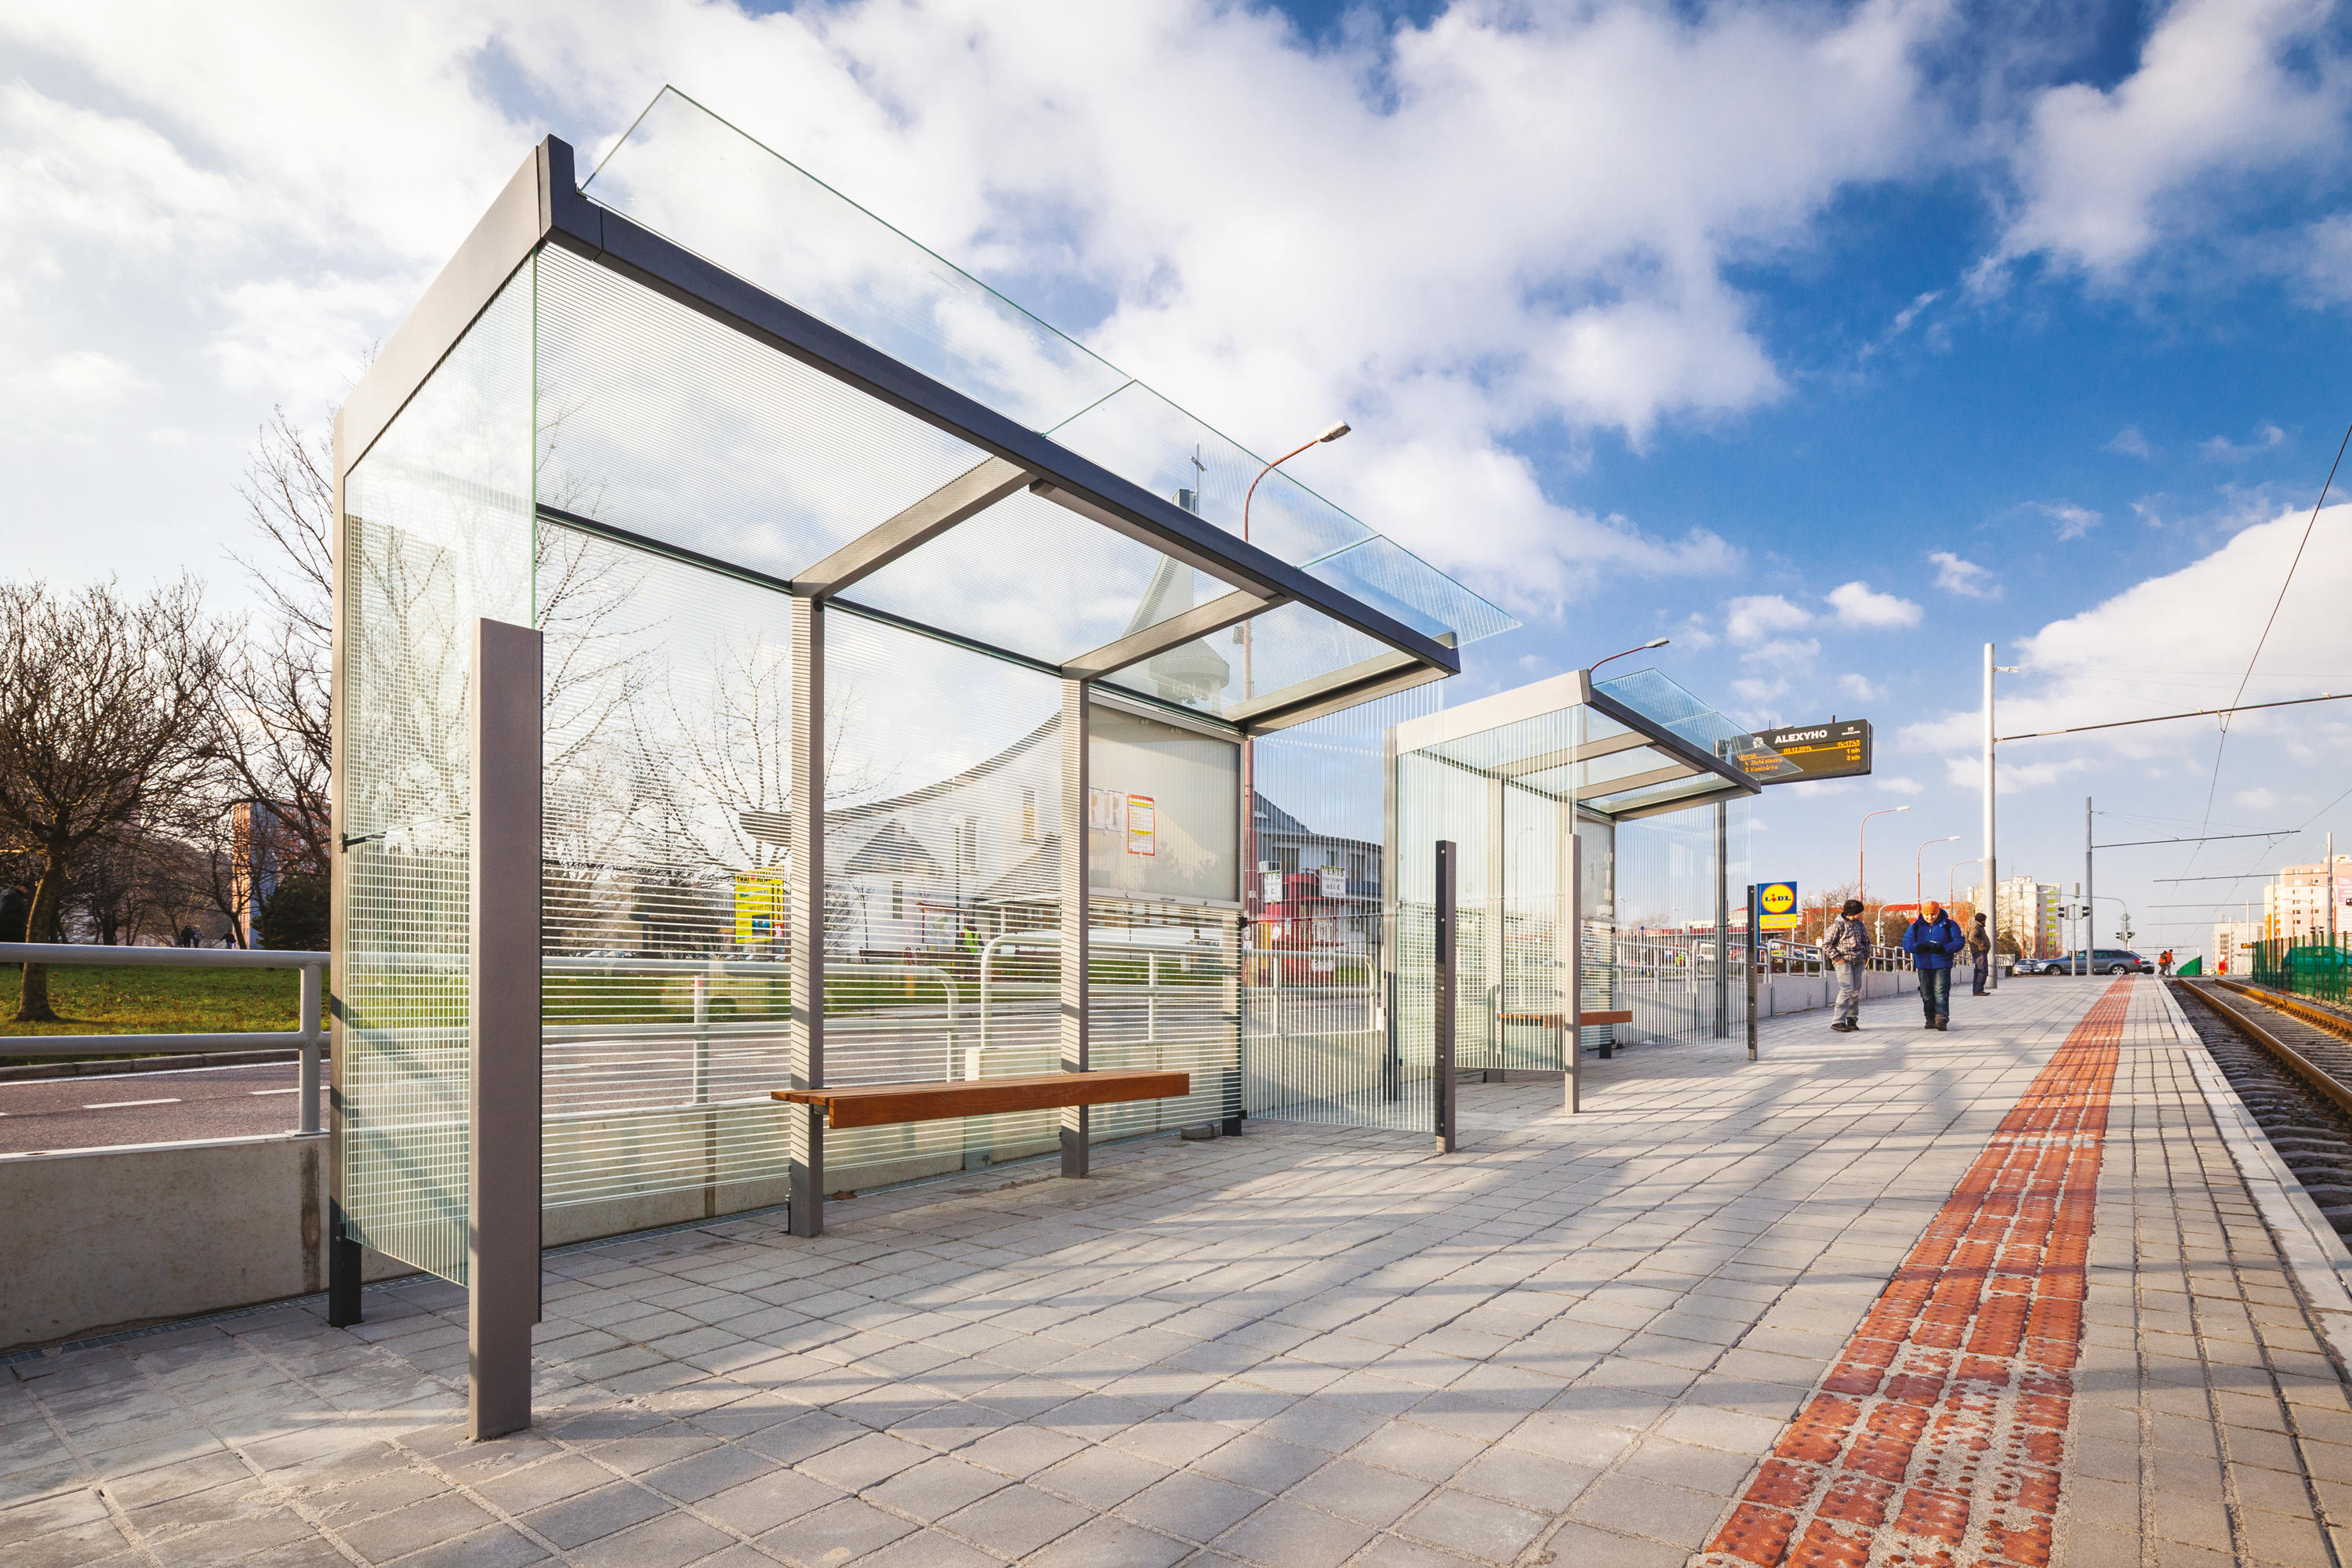 Bus Stop Shelters : Geomere bus stop shelter shelters from mmcité